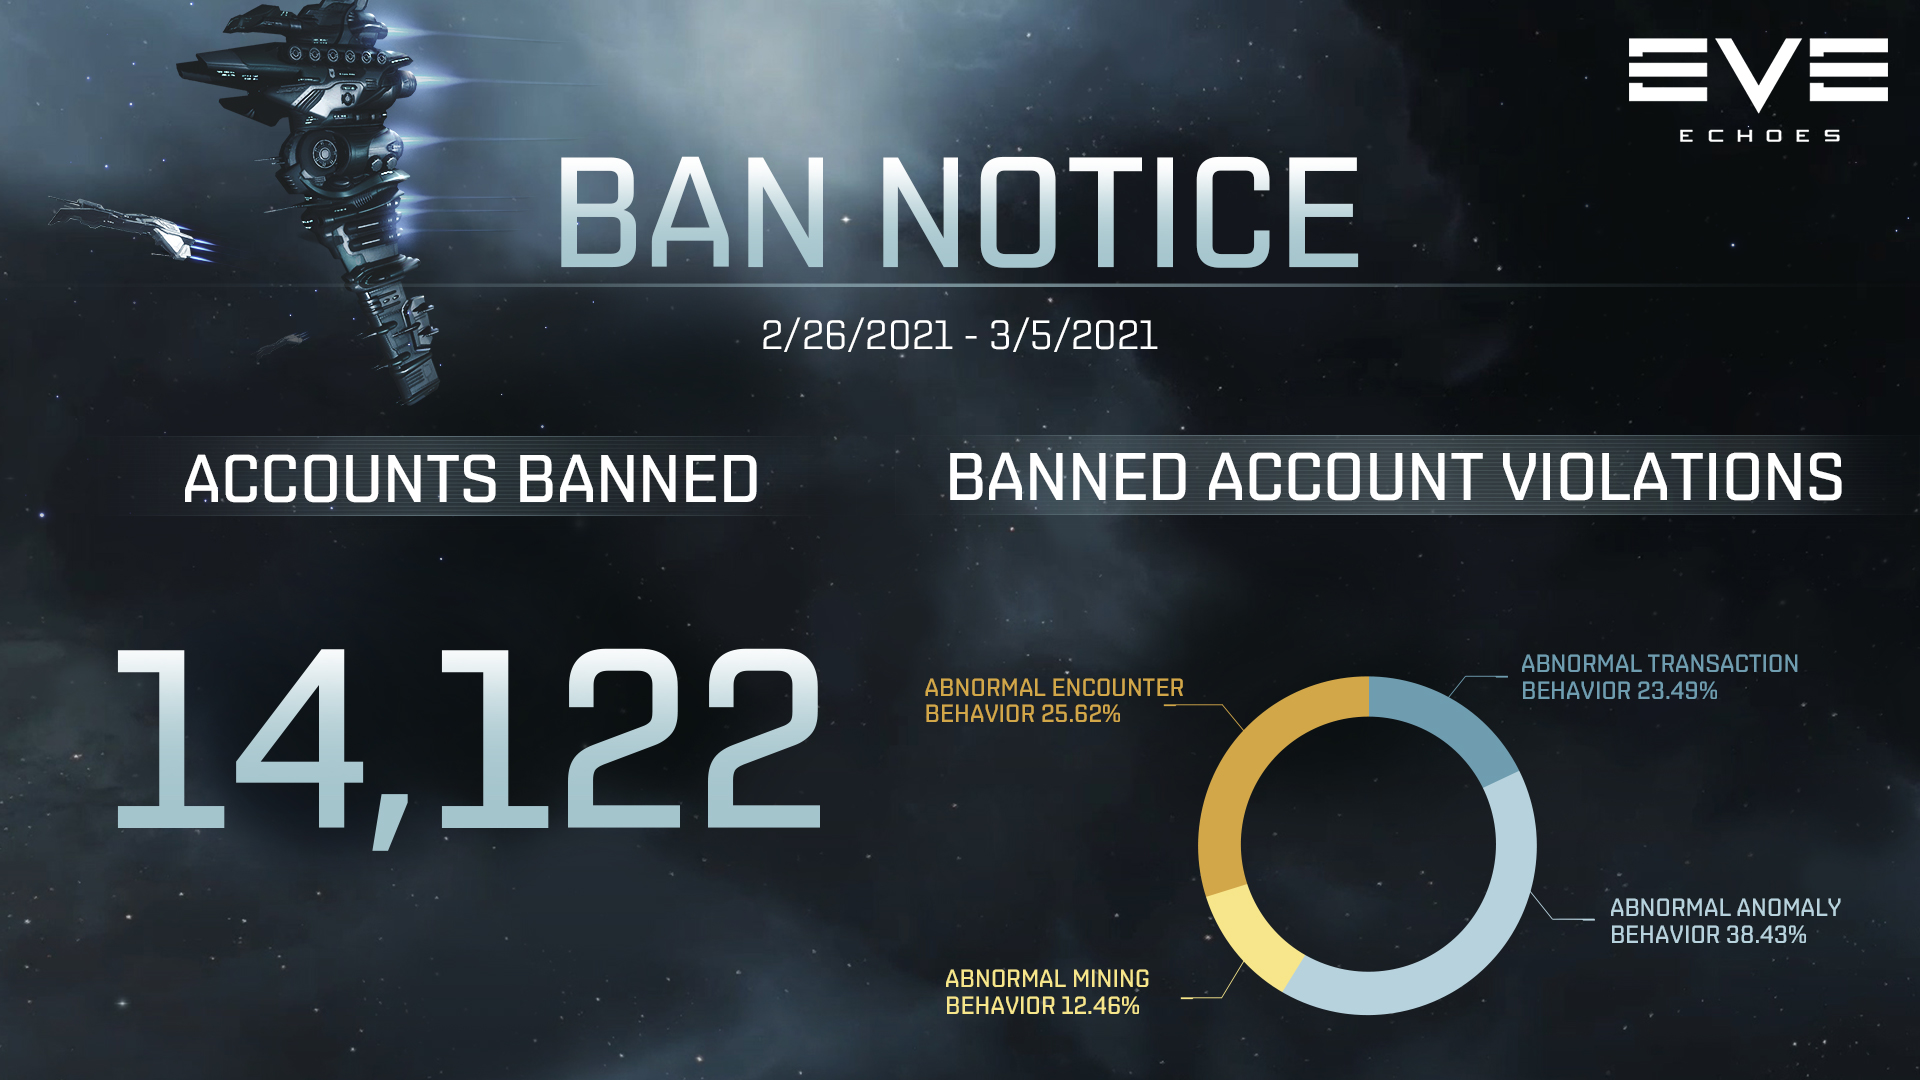 Ban Notice for 02/26-03/05